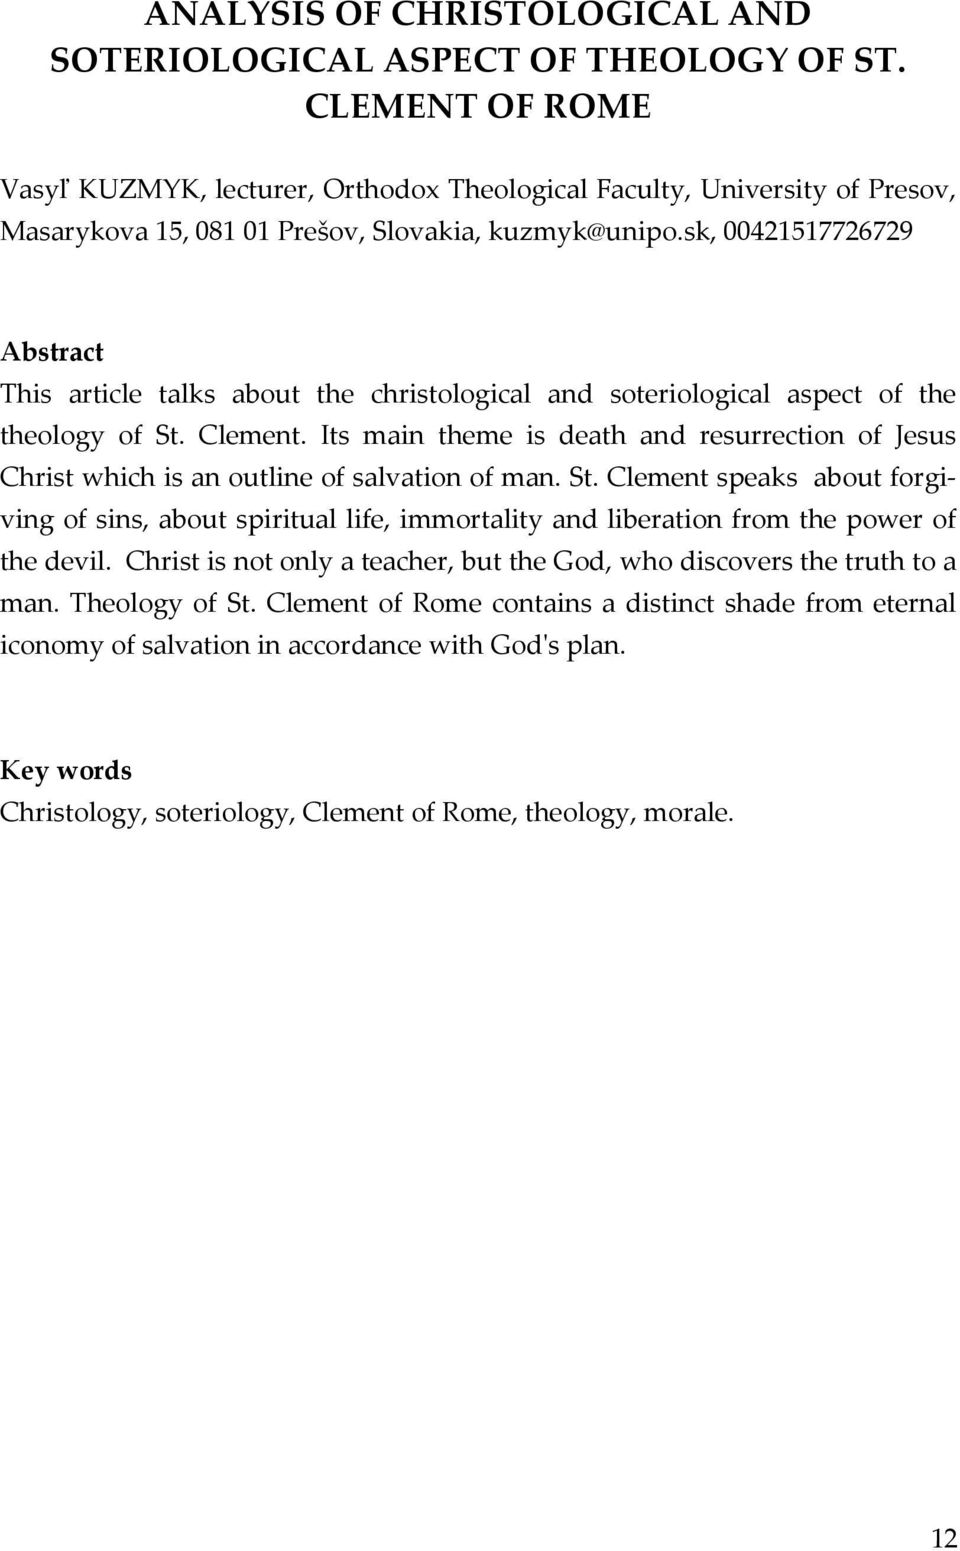 sk, 00421517726729 Abstract This article talks about the christological and soteriological aspect of the theology of St. Clement.